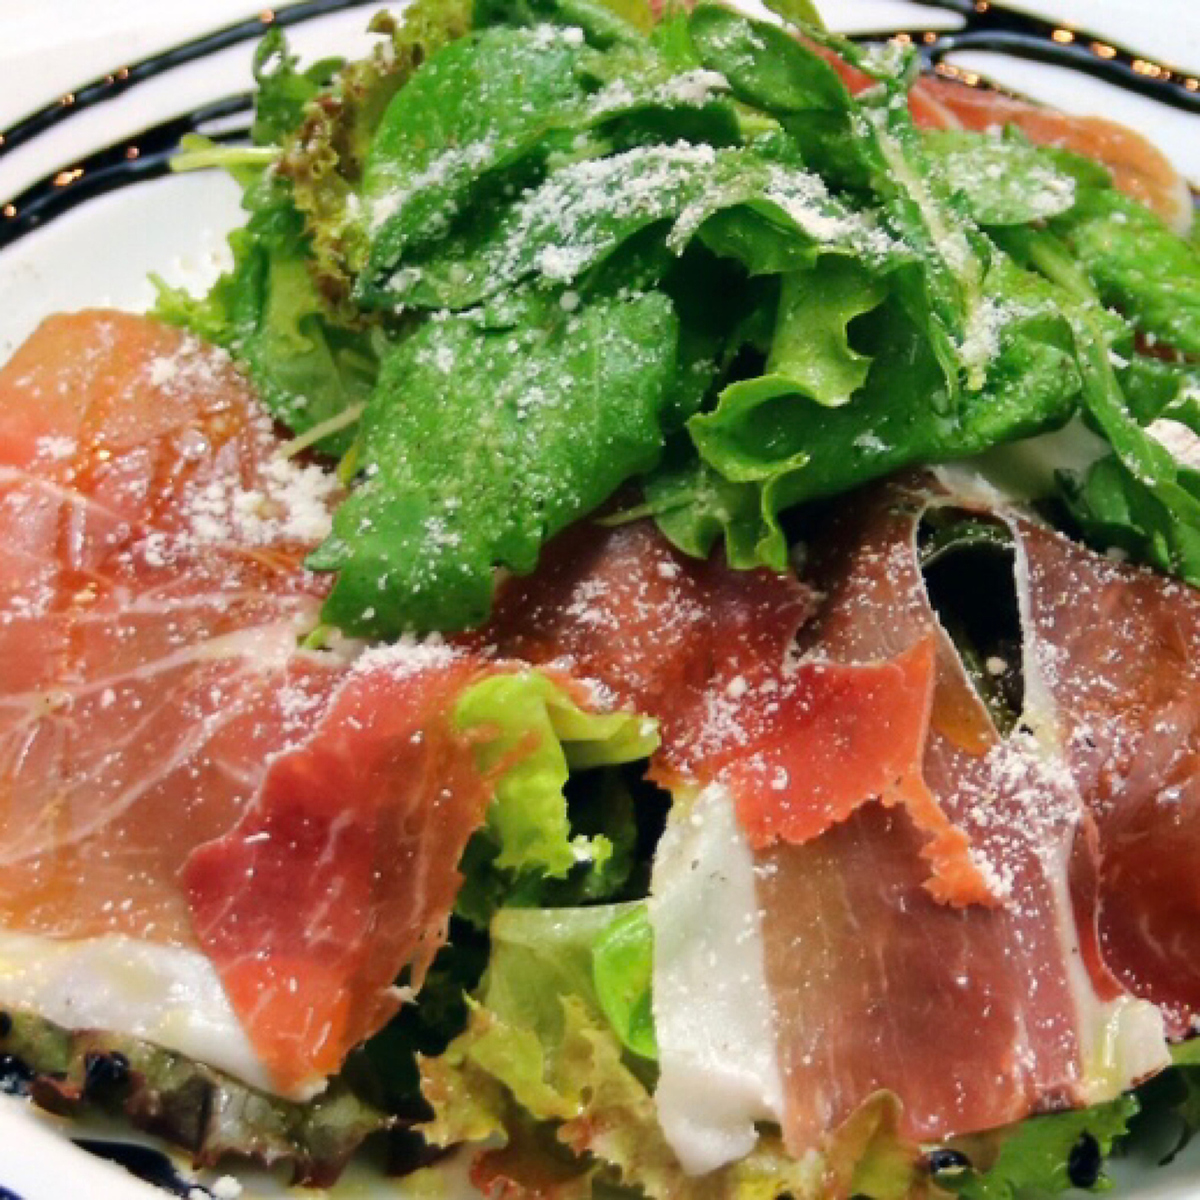 Italian salad with raw ham and mizuna